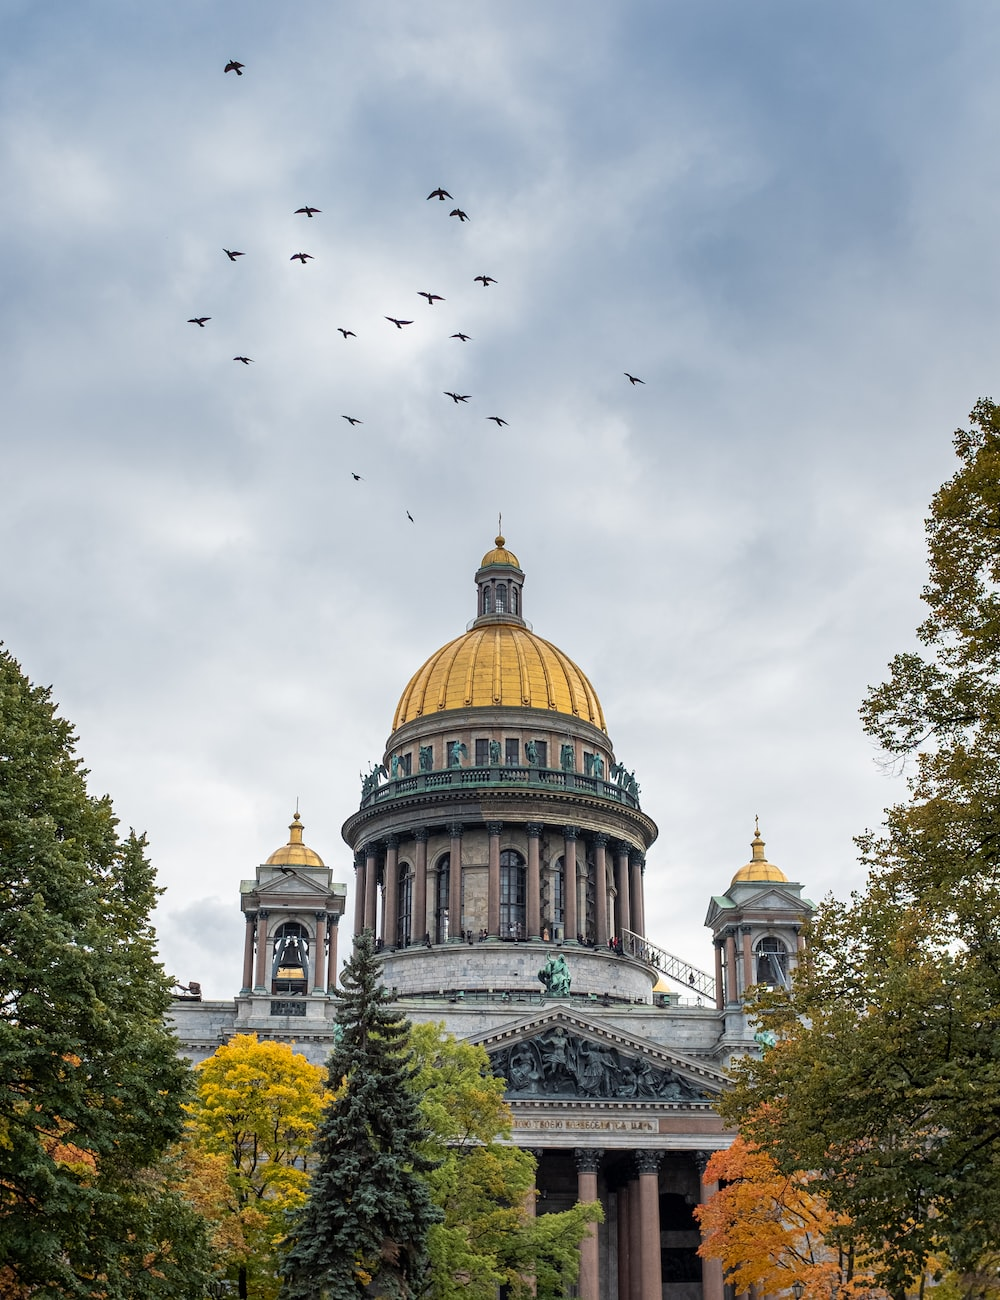 flock of birds flying over brown and white dome building during daytime